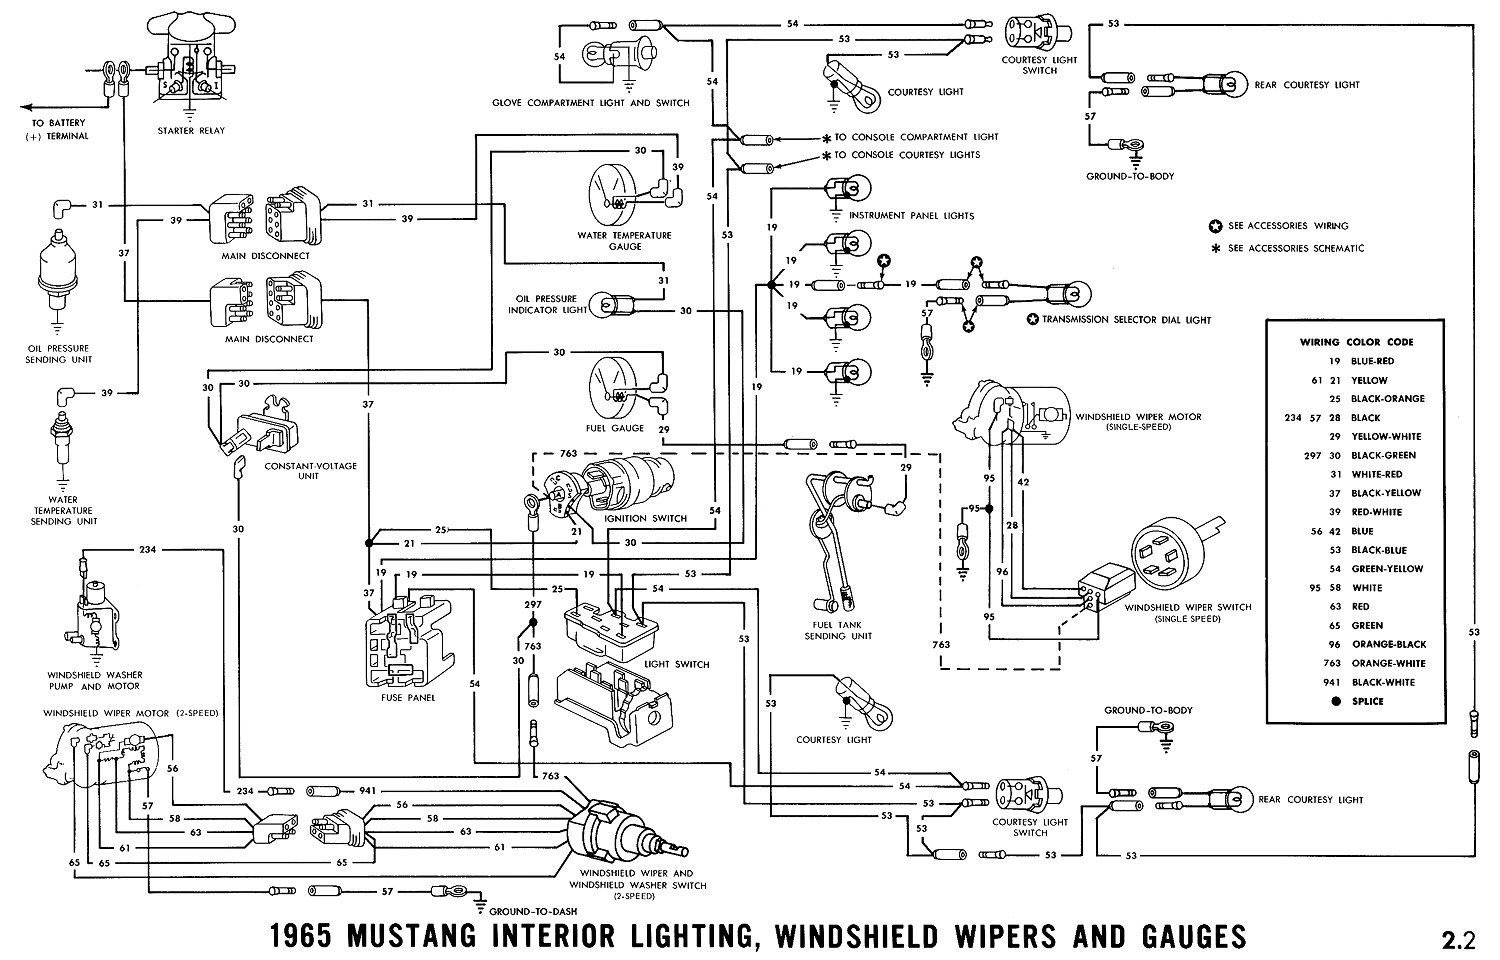 1965g 1965 mustang wiring diagrams average joe restoration 1966 mustang headlight wiring diagram at readyjetset.co